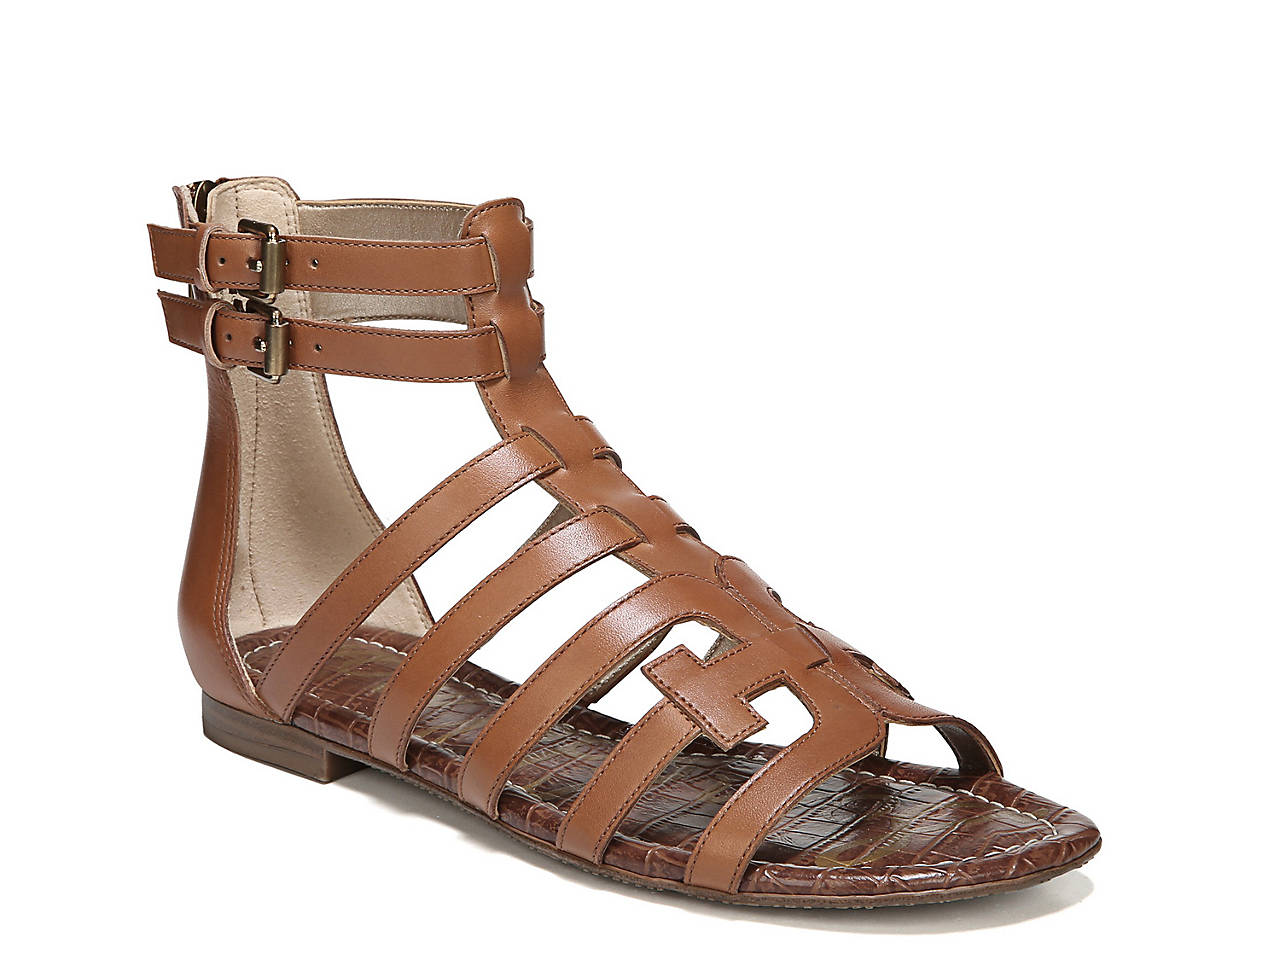 7b1f1ab99b9 Sam Edelman Berke Gladiator Sandal Women s Shoes